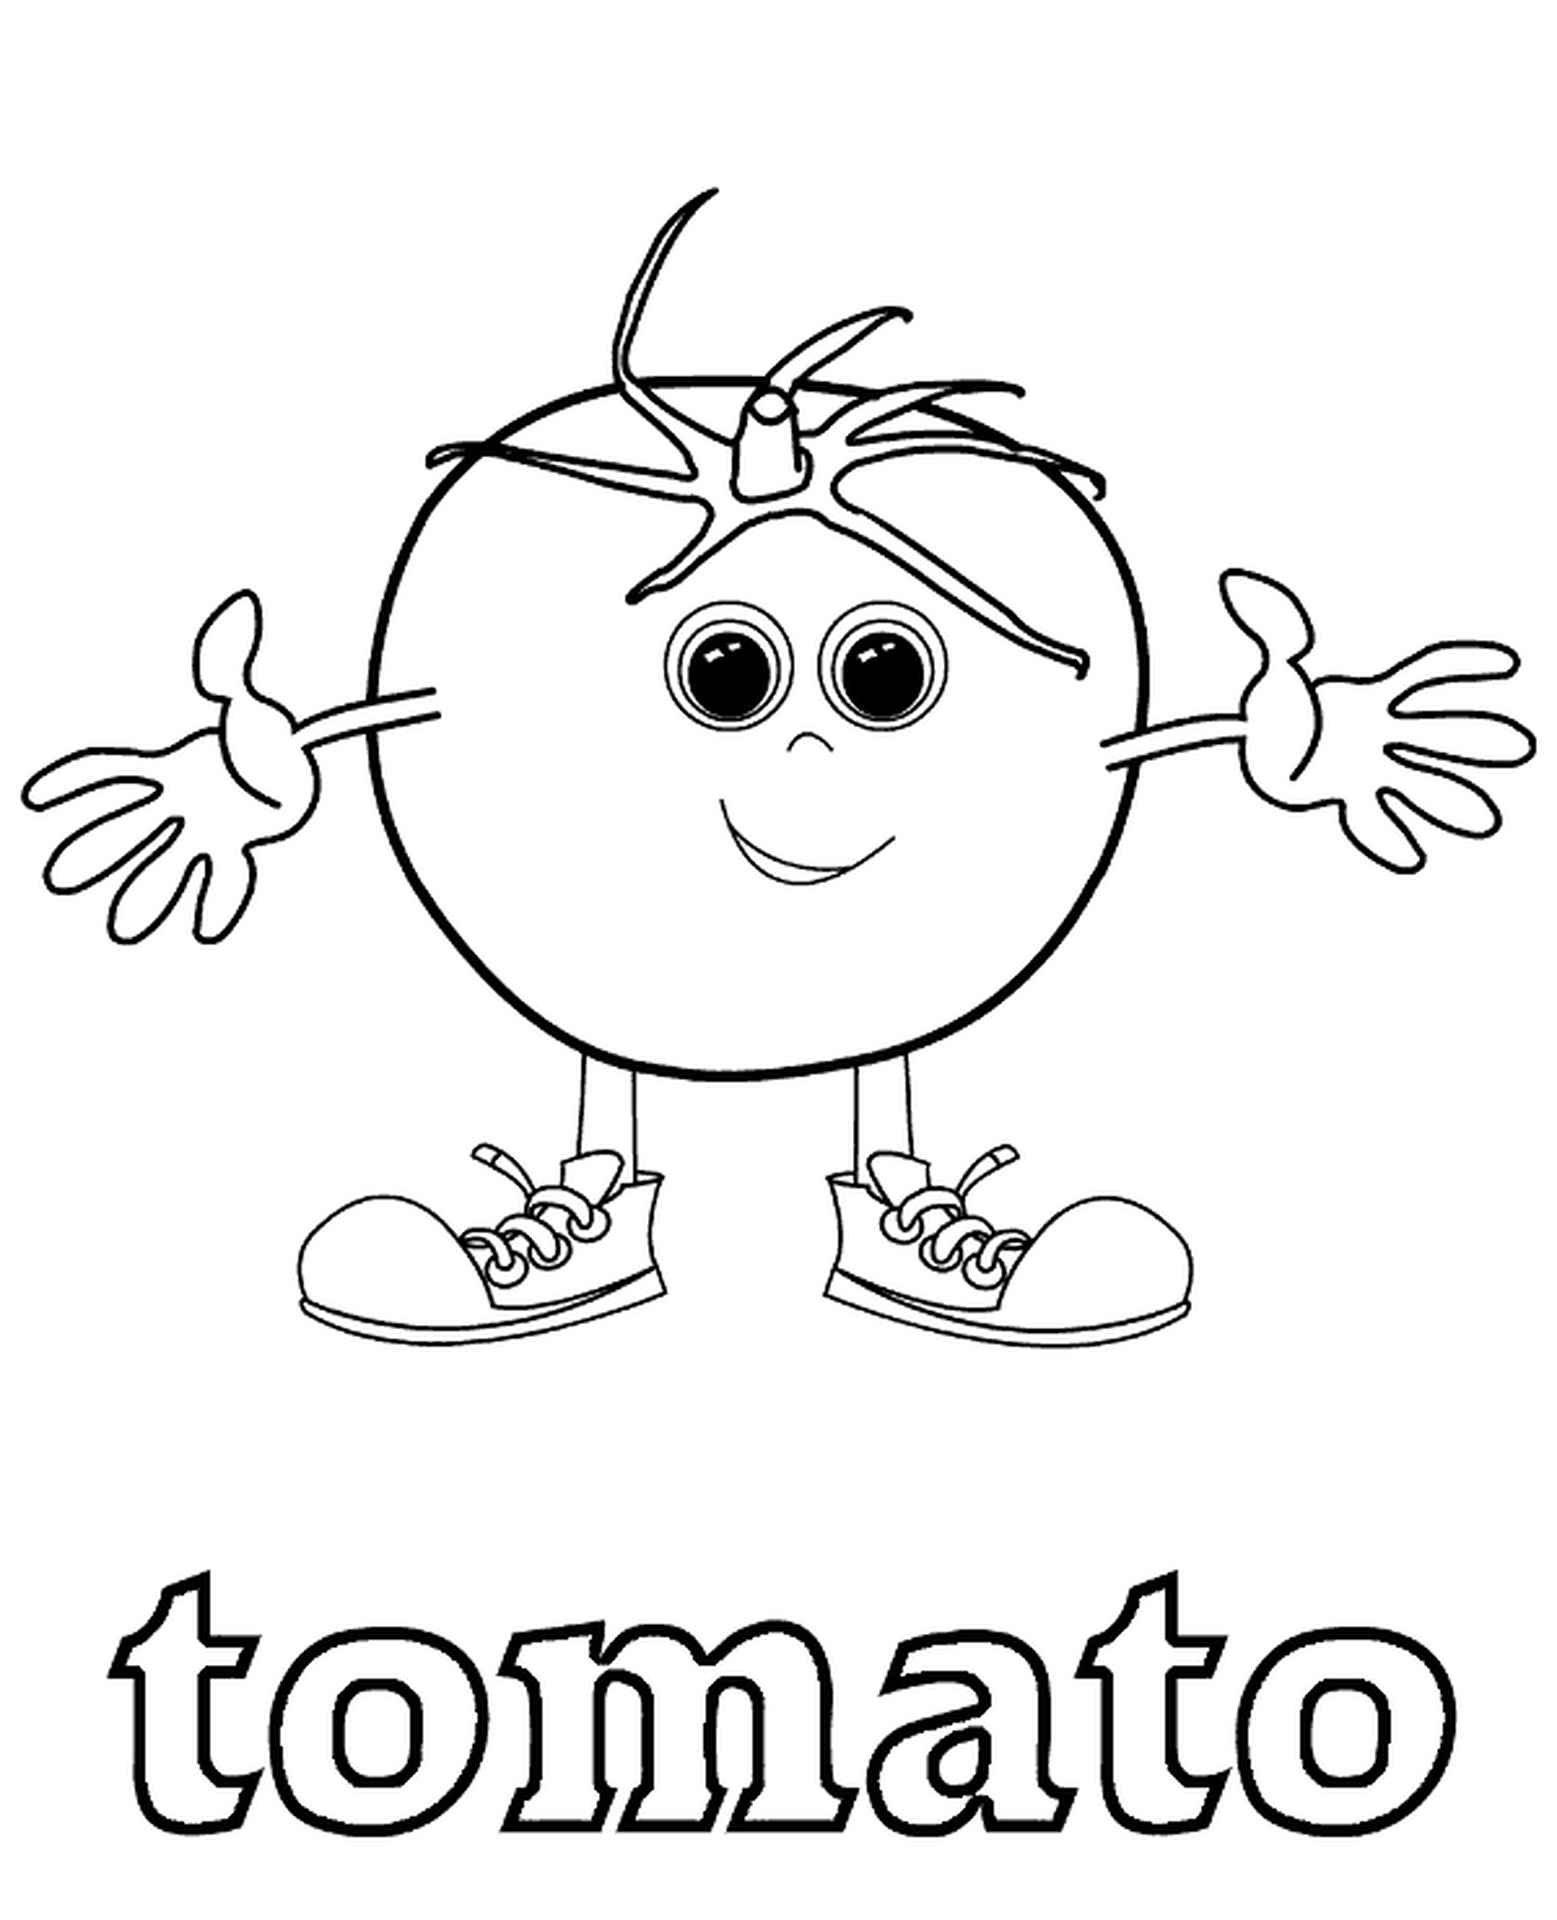 Cute Tomato Coloring Page For Kids